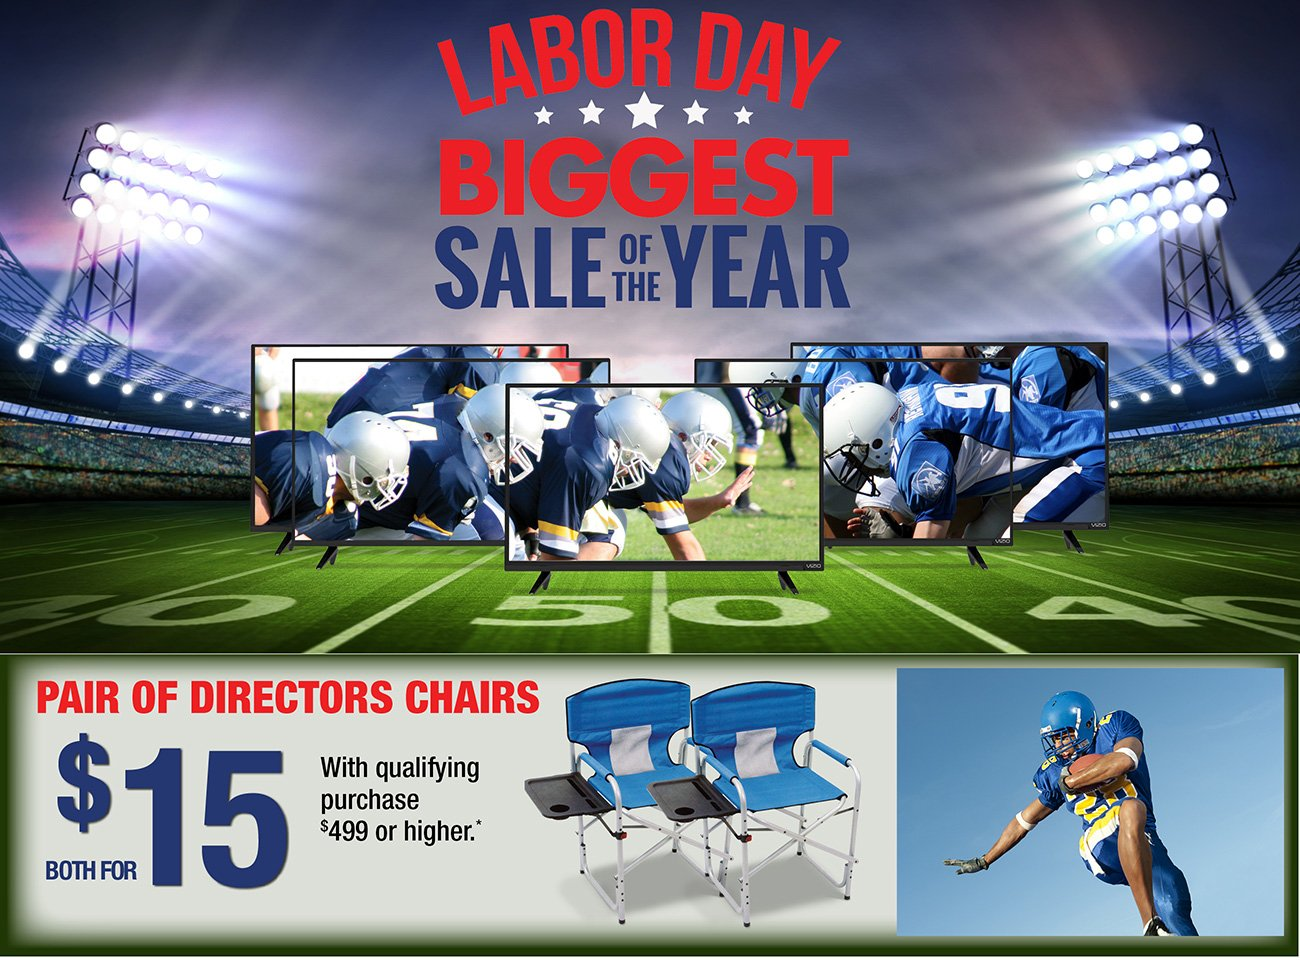 Kickoff Labor Day with Big Screens 2 Directors Chairs for ly $15